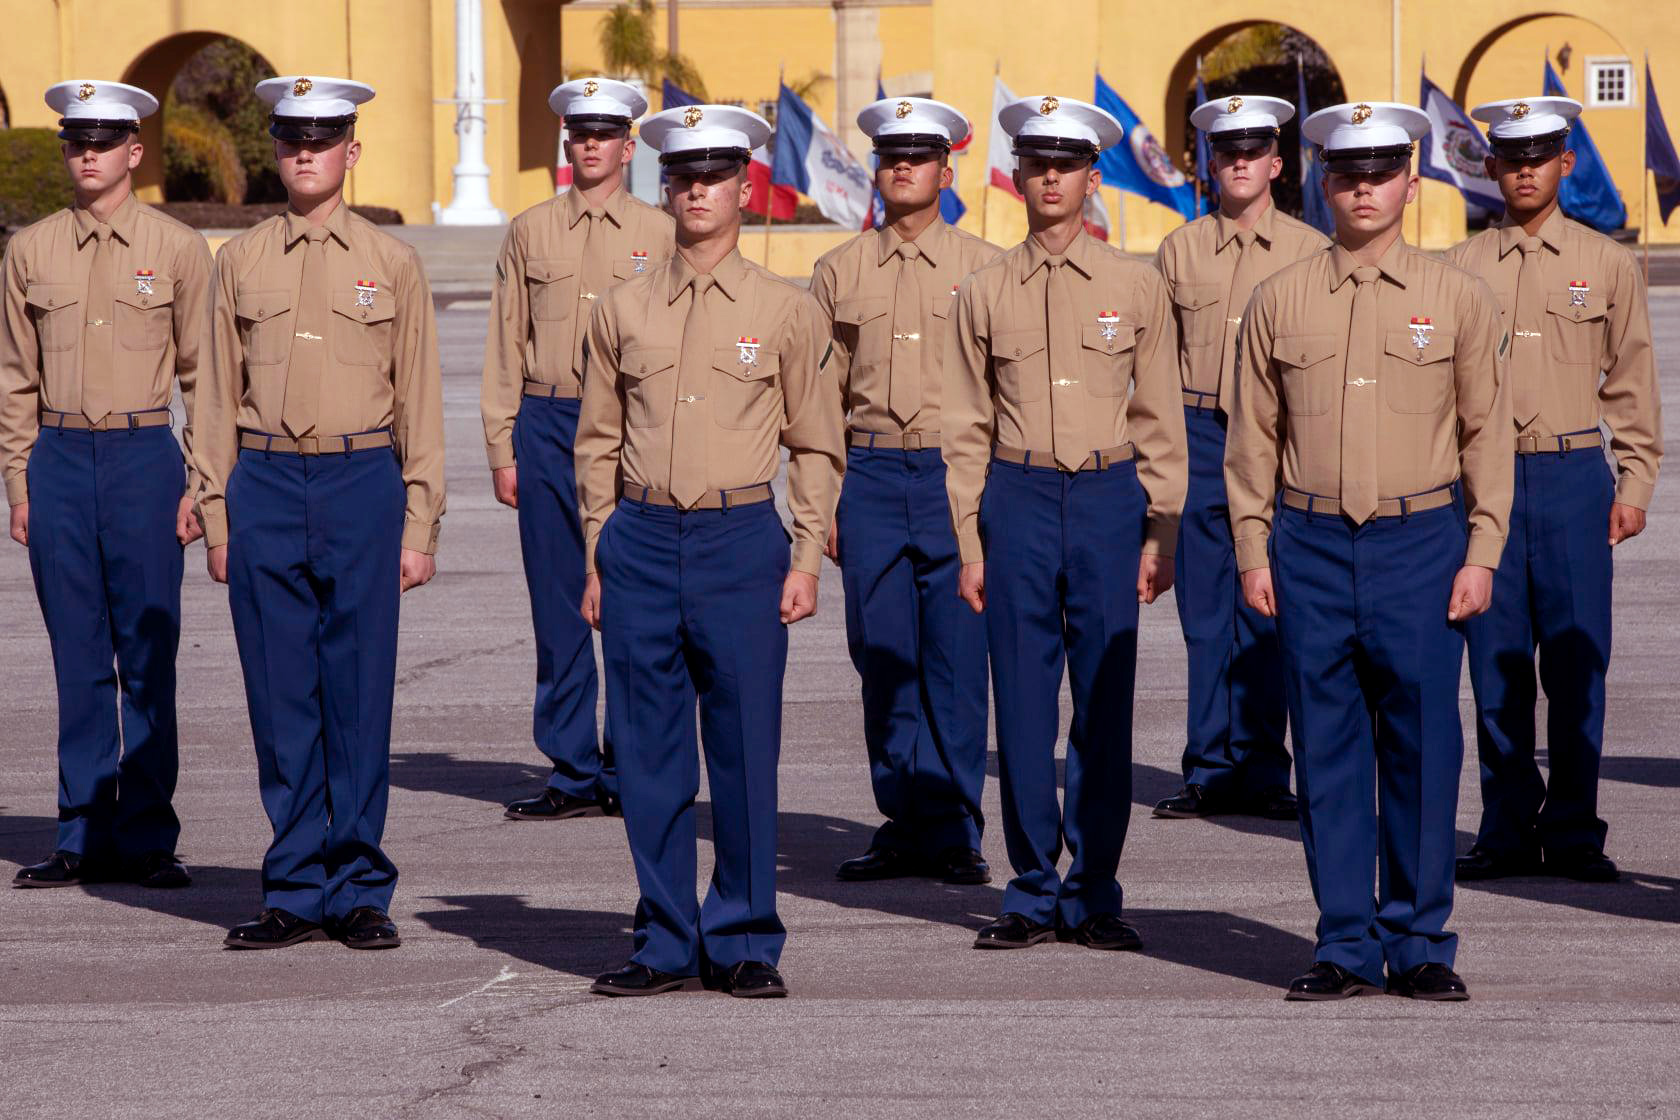 New Marines of Alpha Company, 1st Recruit Training Battalion, stand in formation during a graduation ceremony at Marine Corps Recruit Depot, San Diego, Dec. 11, 2020.